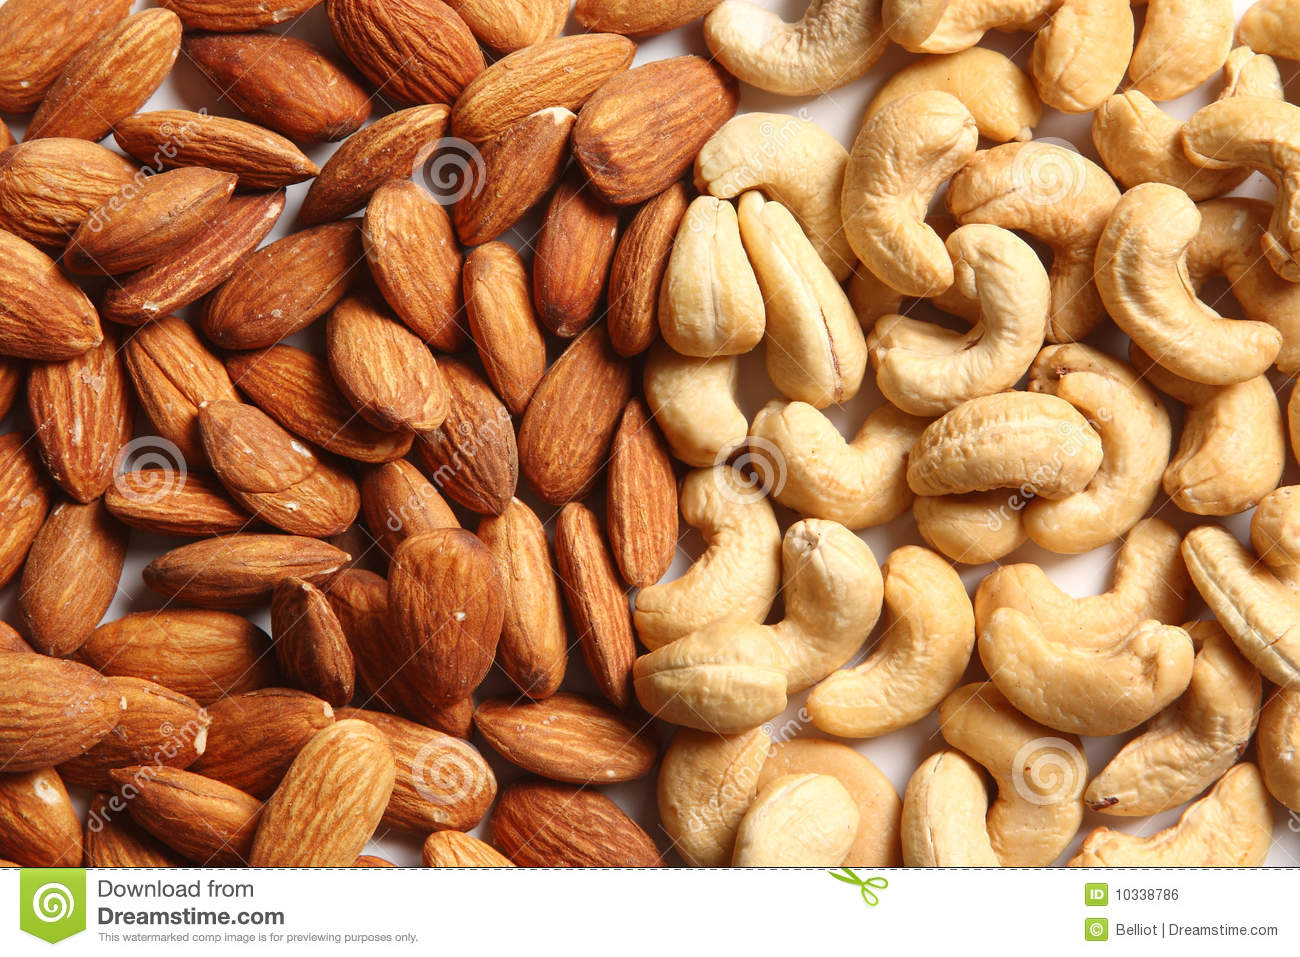 Almonds and cashew Nuts stock photo. Image of messy, nutritious - 10338786